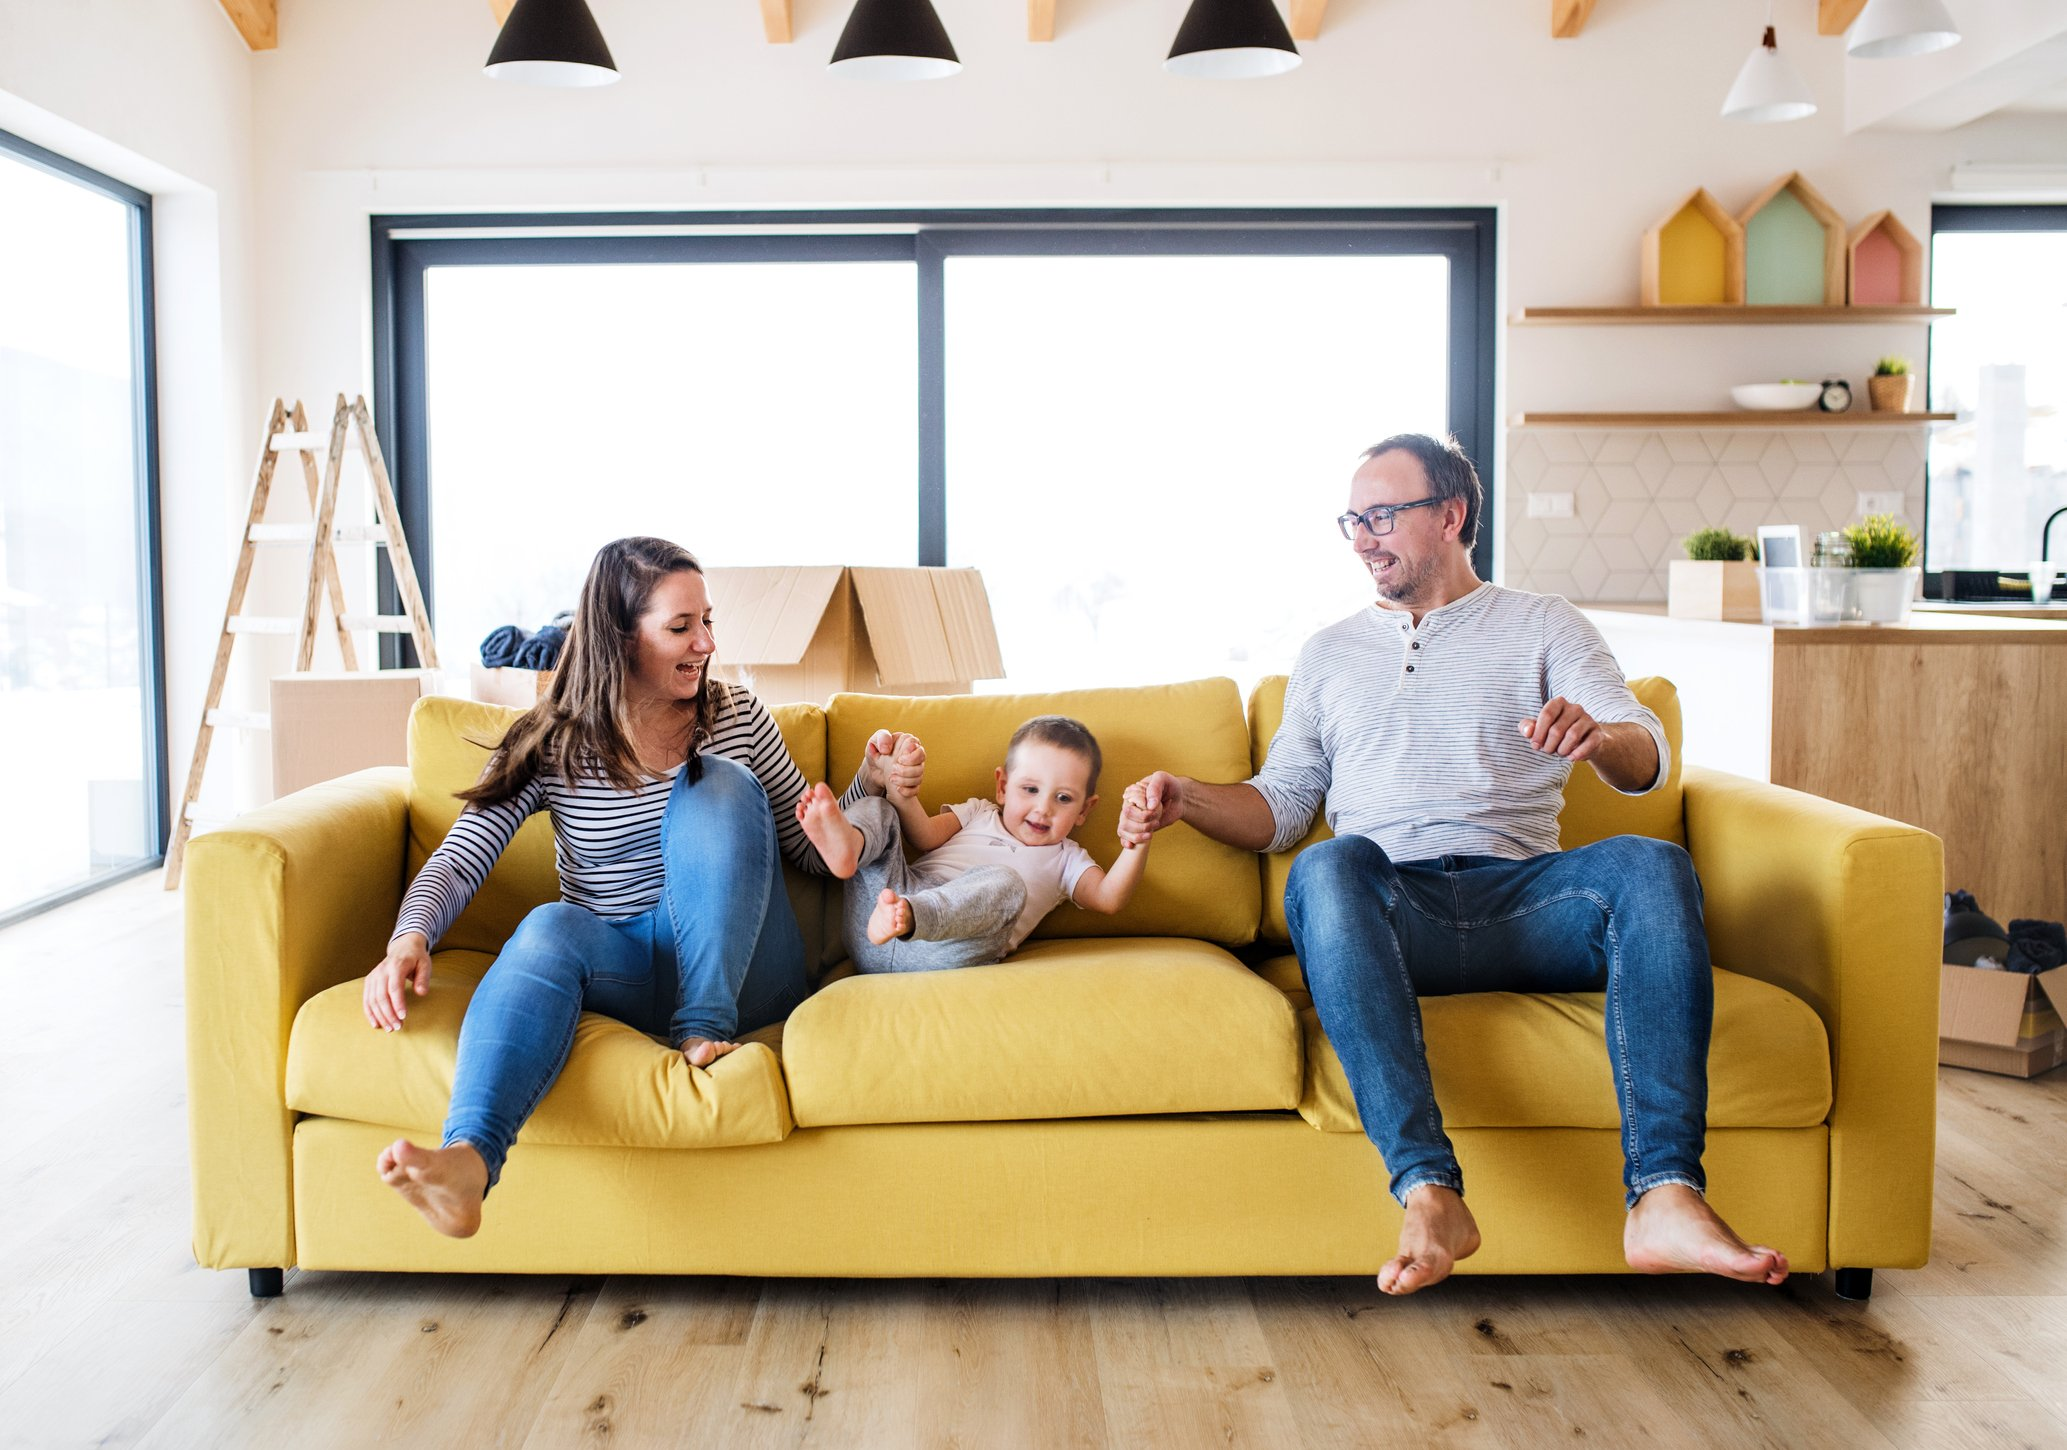 Young family and toddler boy with boxes moving in a new home, having fun on a sofa.   Photo: Getty Images